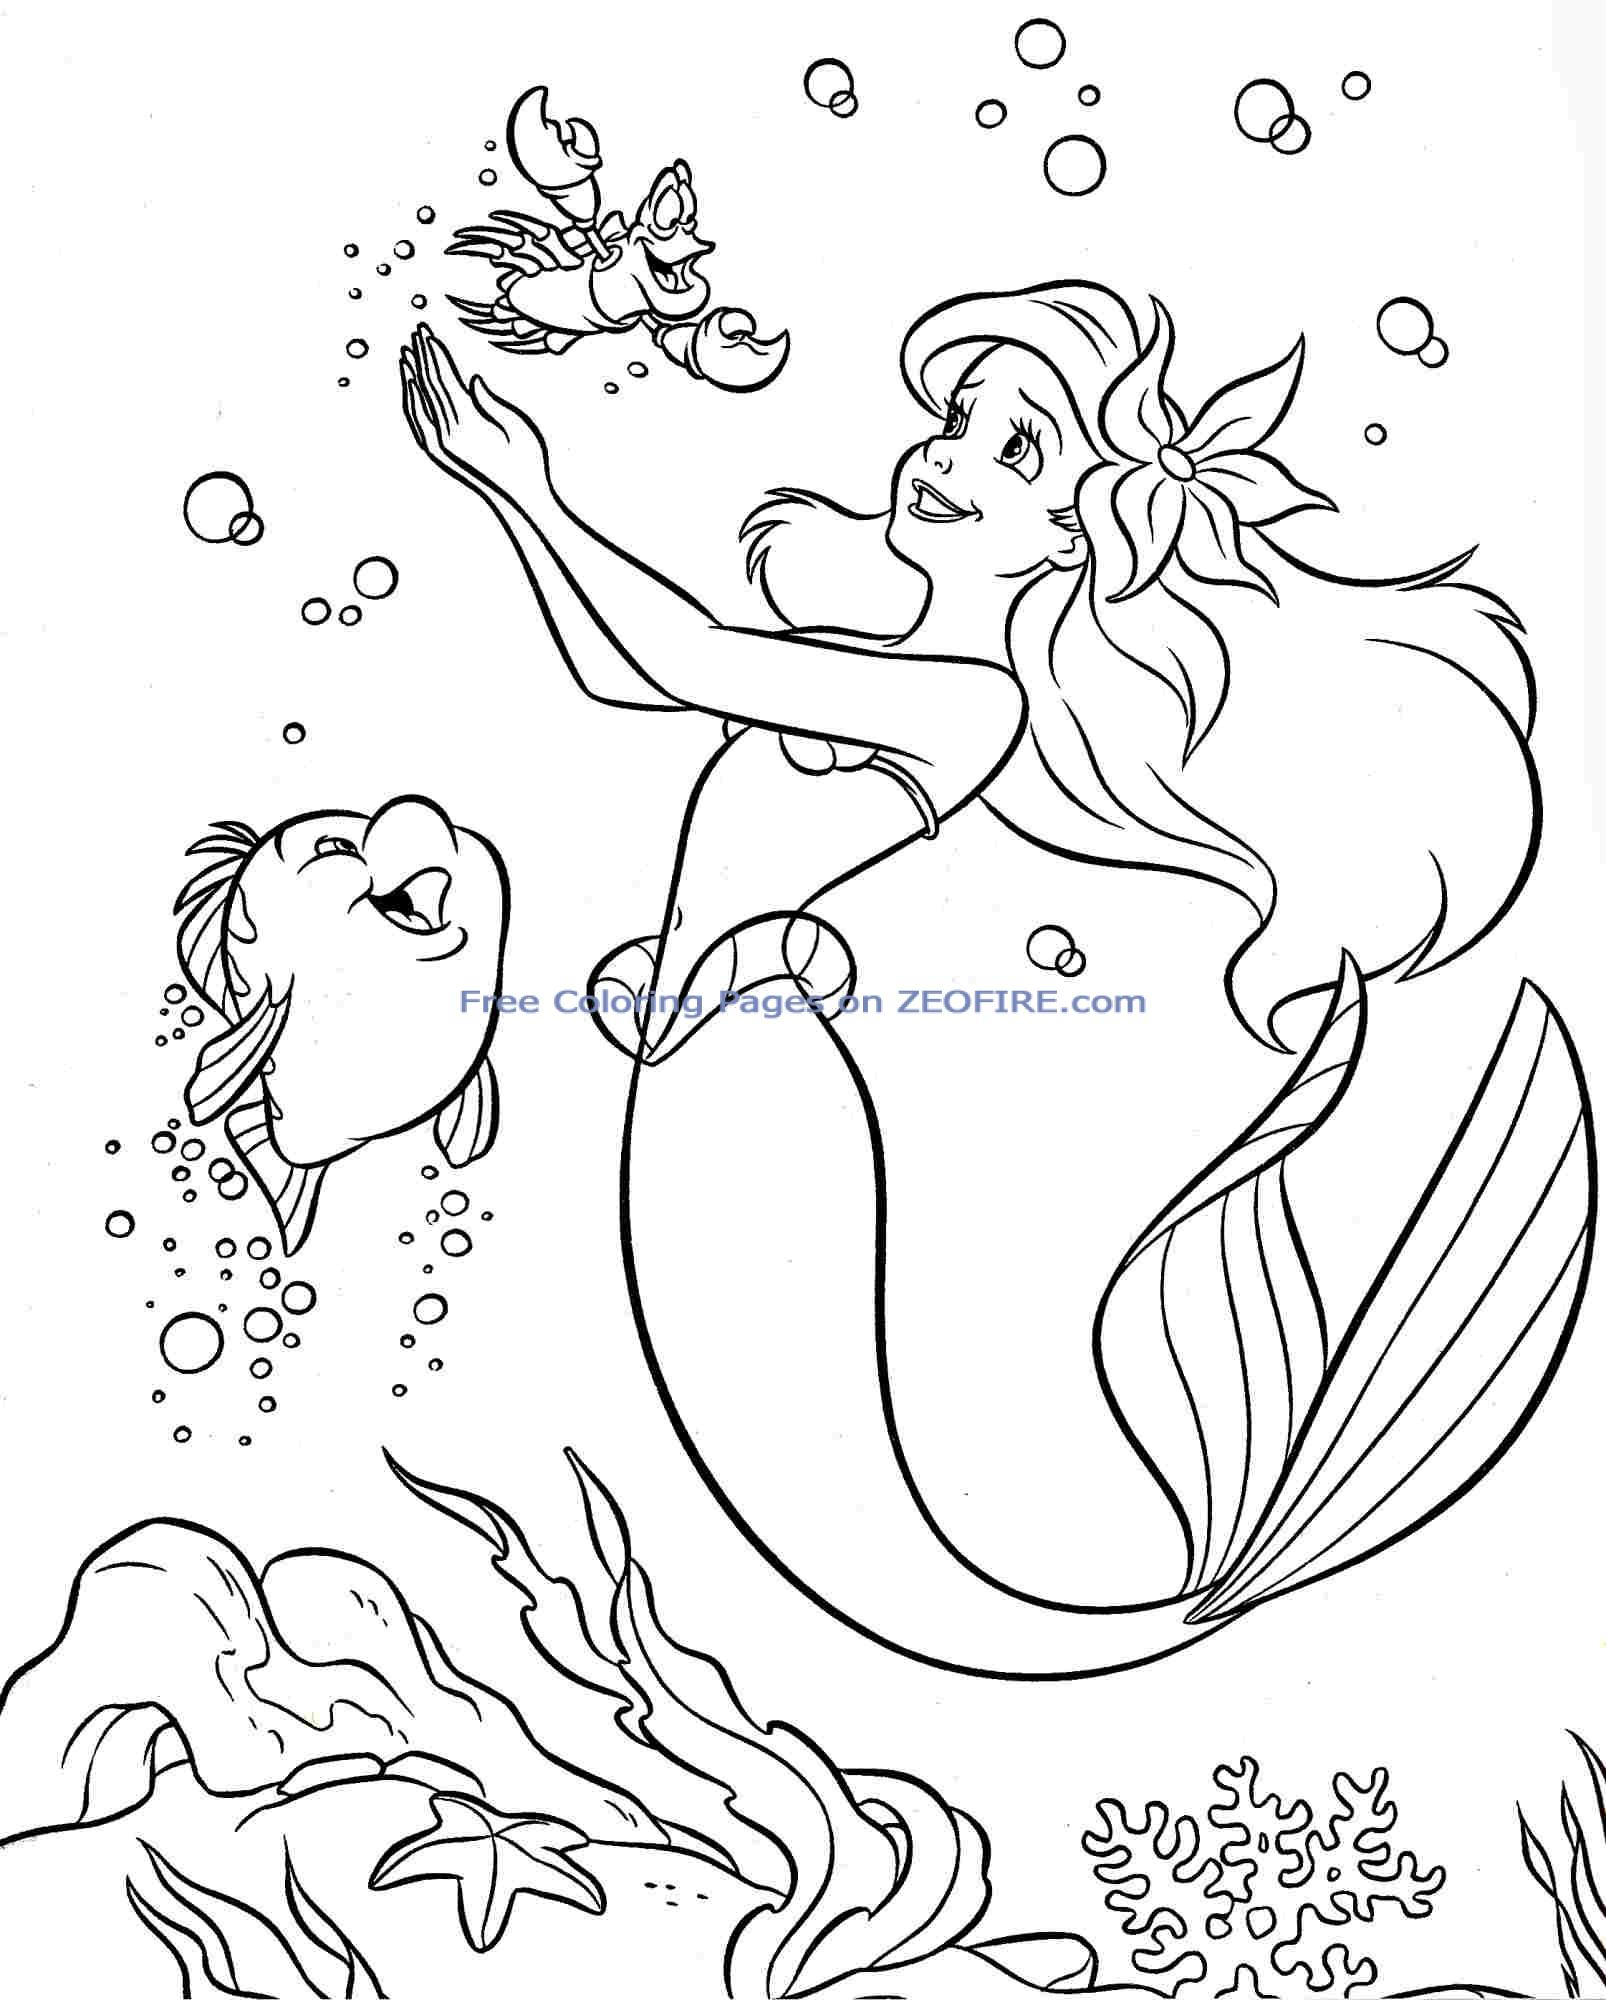 the little mermaid coloring pages the little mermaid coloring pages 4 disneyclipscom the coloring pages little mermaid